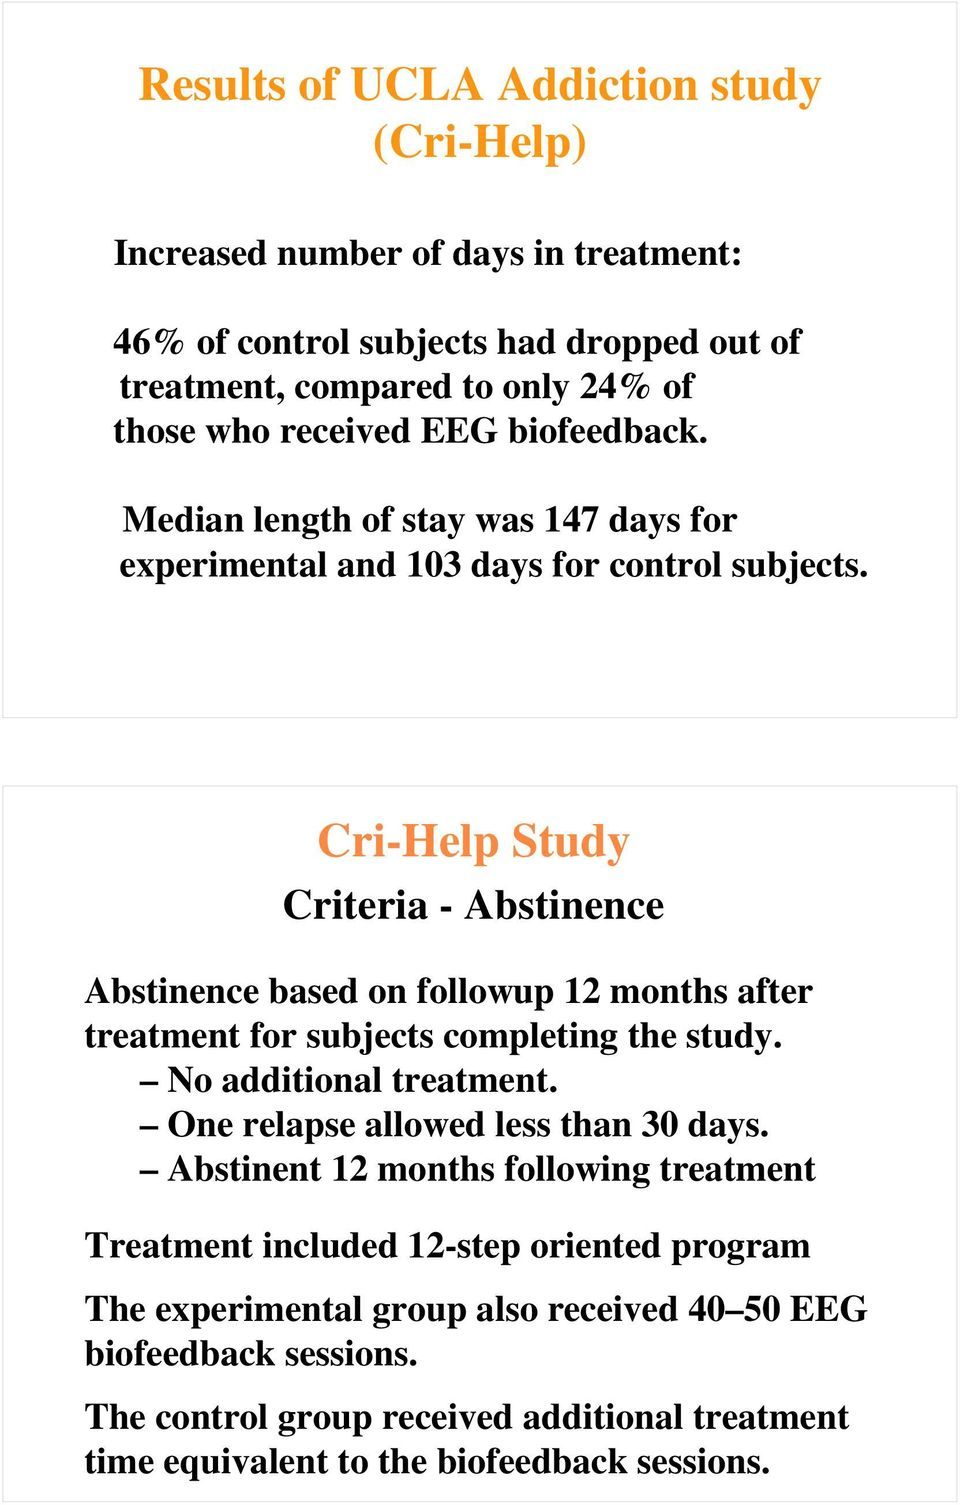 Cri-Help Study Criteria - Abstinence Abstinence based on followup 12 months after treatment for subjects completing the study. No additional treatment.